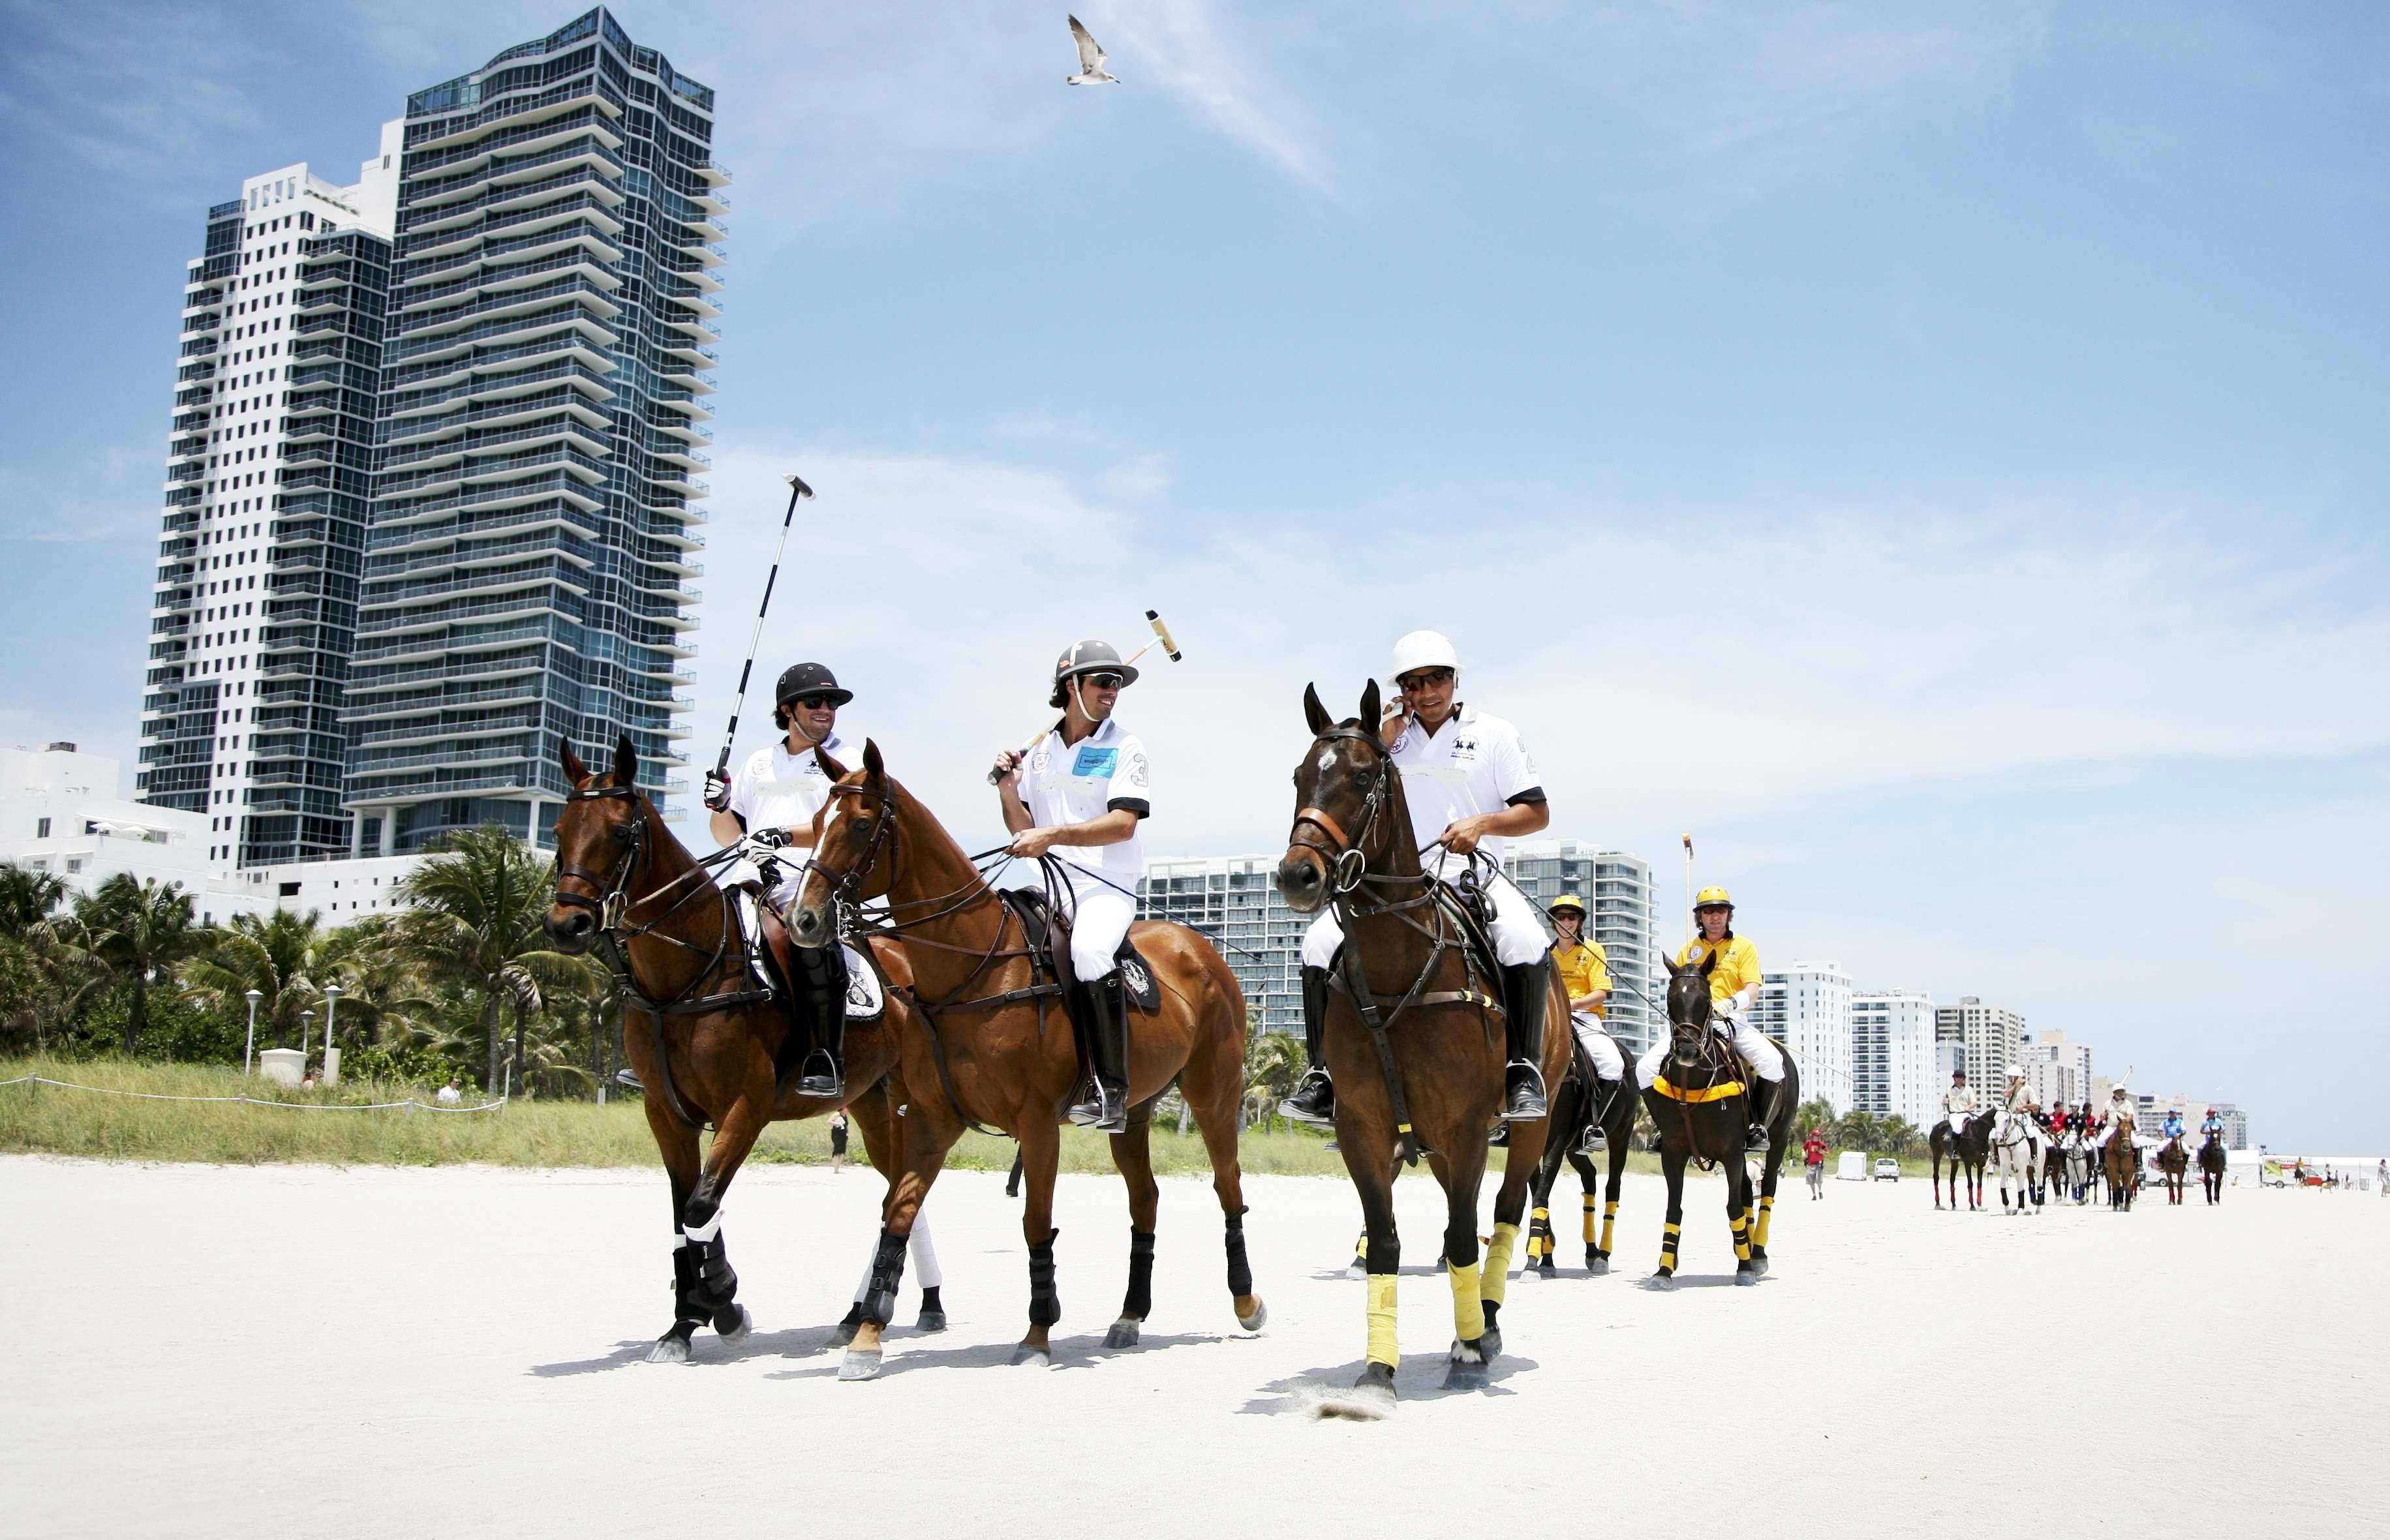 Marching Polo Ponies